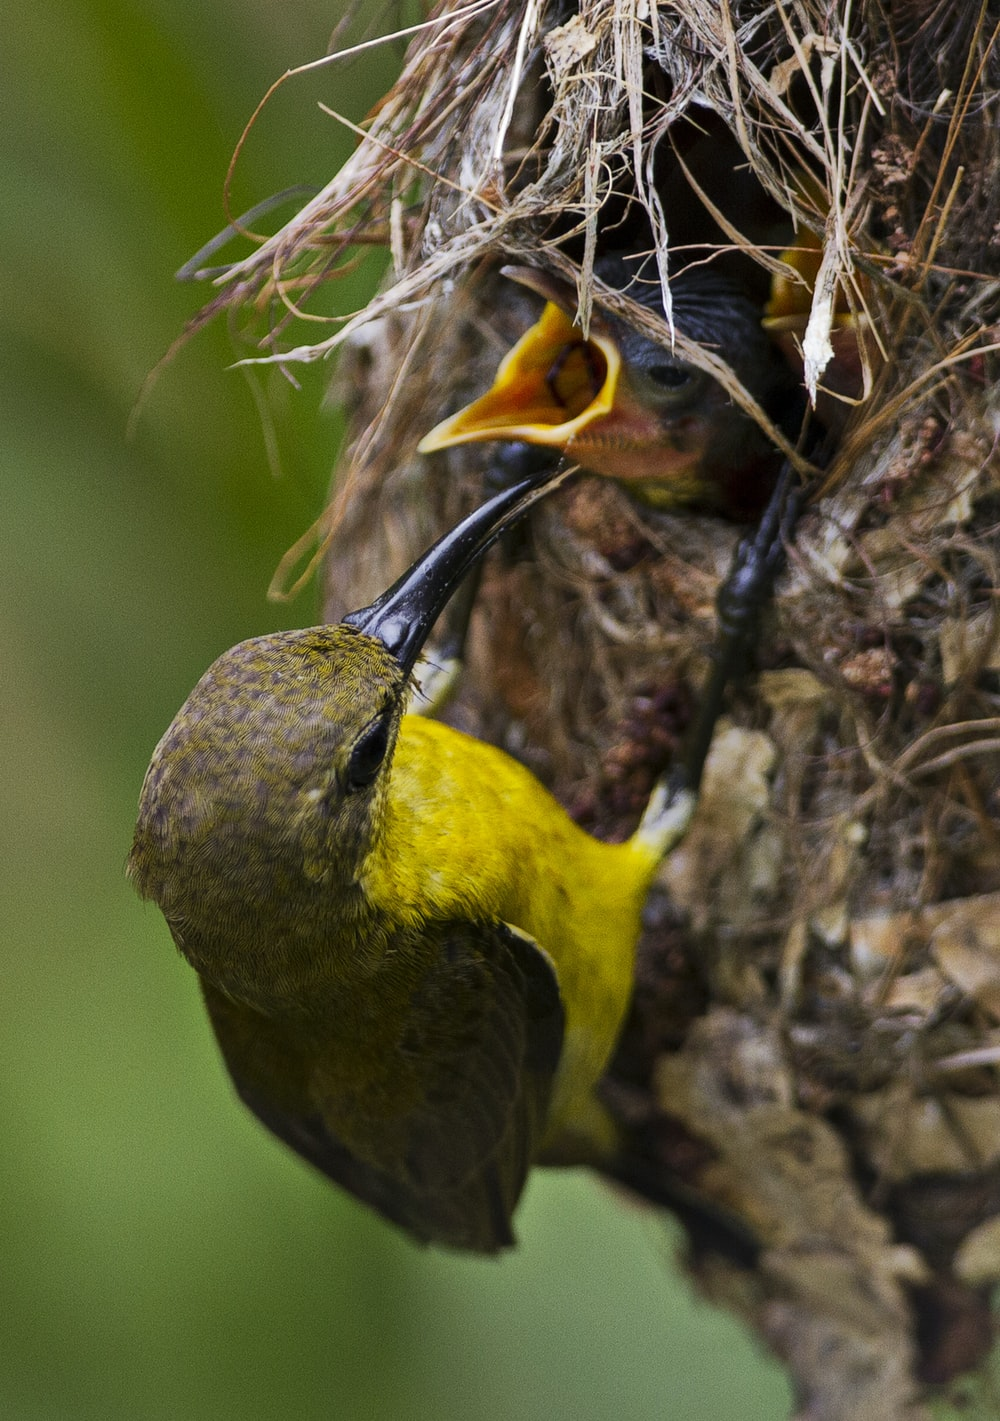 yellow and black bird on brown tree branch